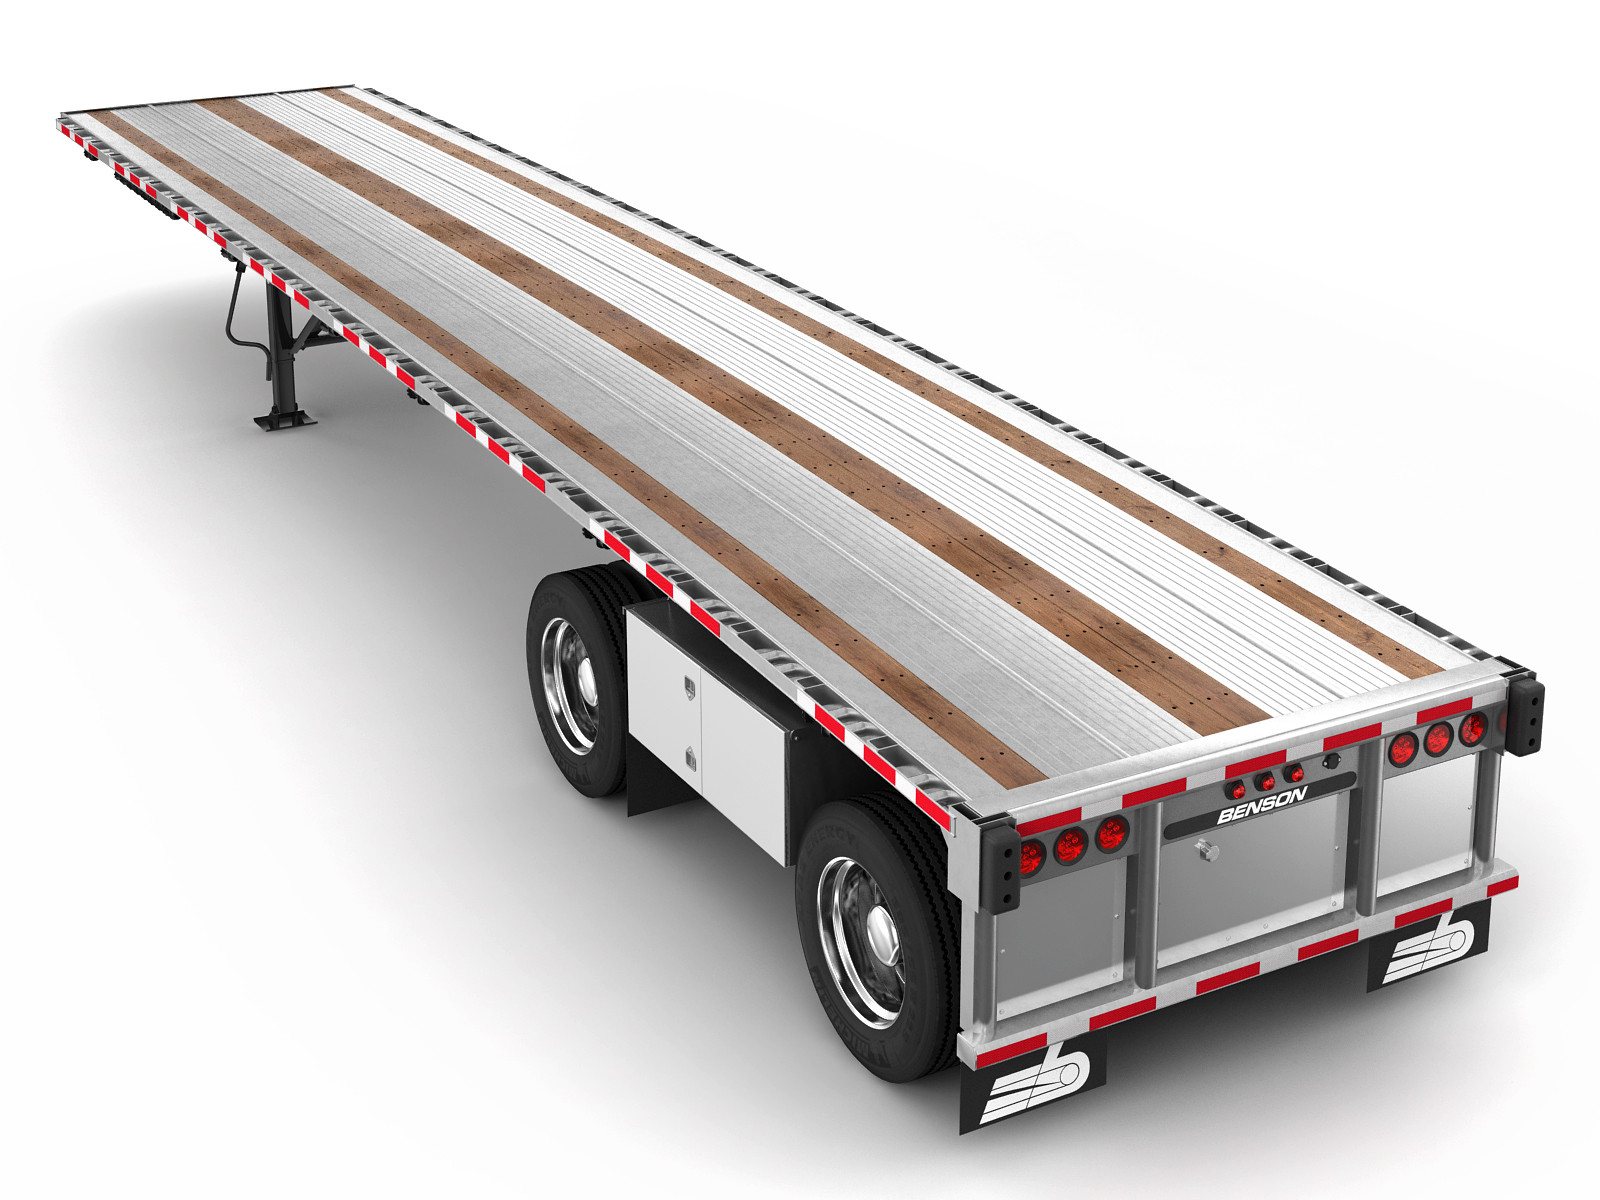 flatbed_03_View03.jpg